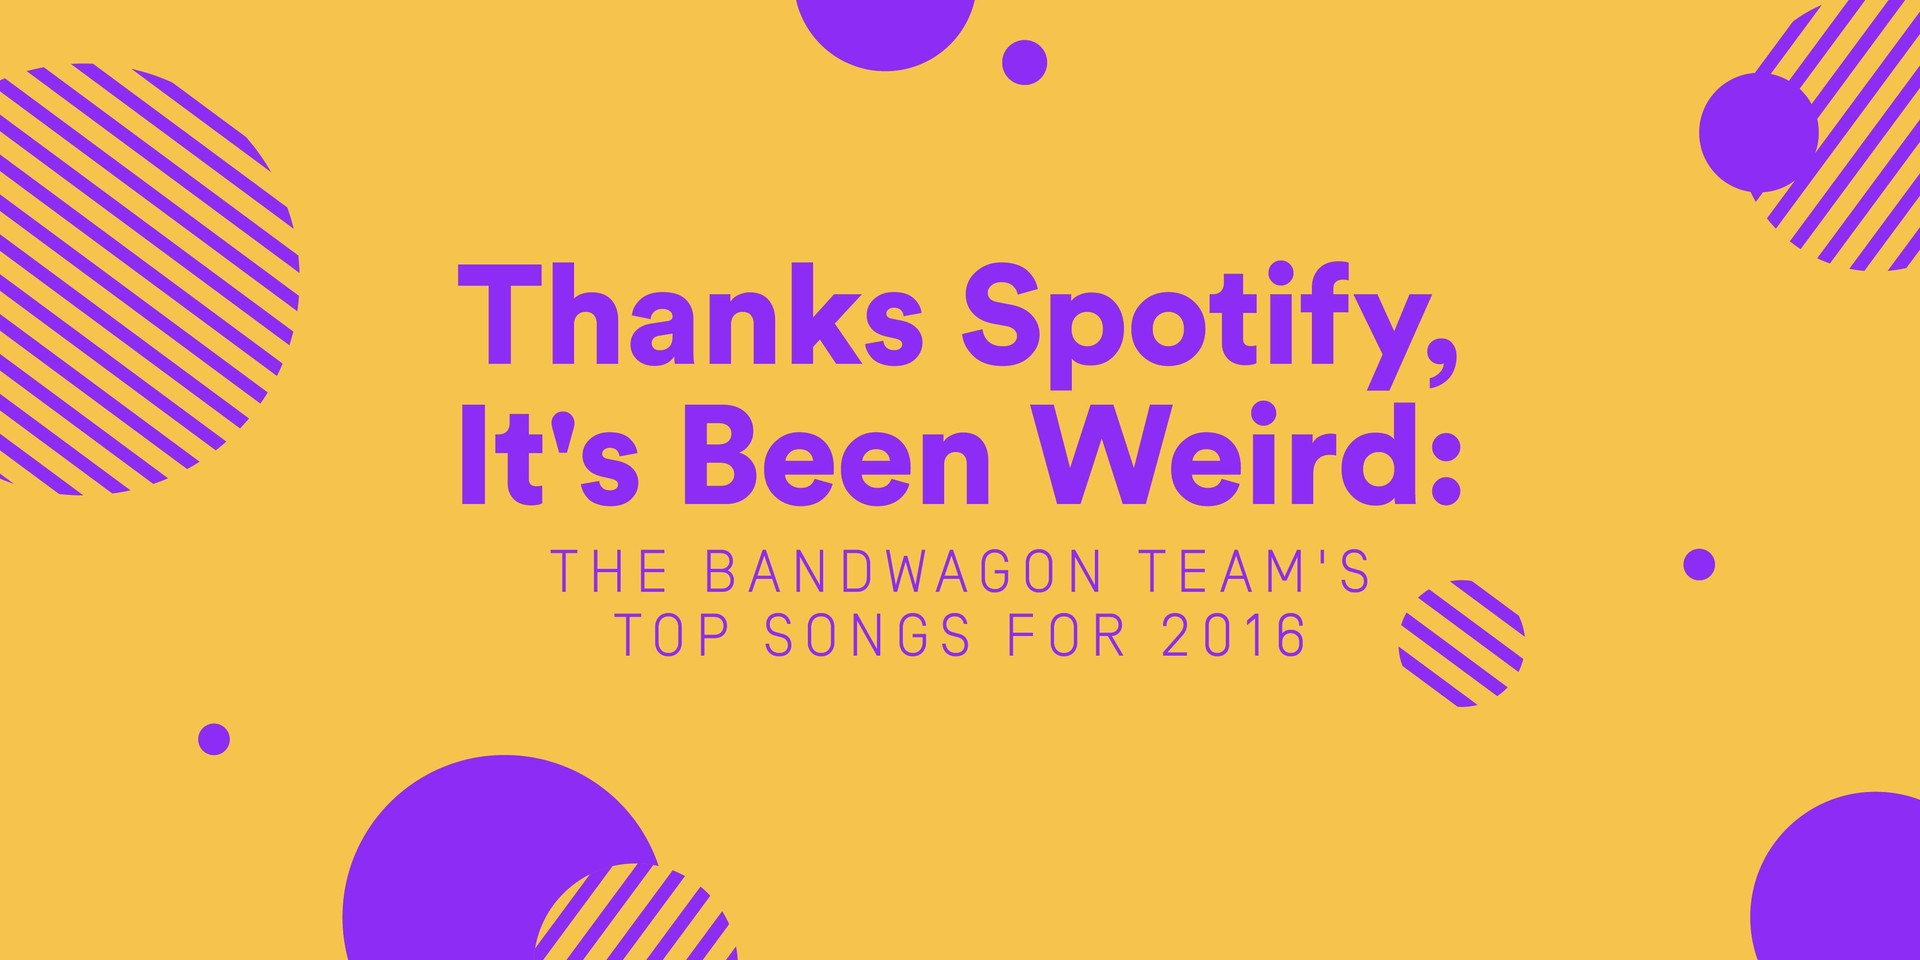 Thanks, Spotify, It's Been Weird: The Bandwagon Team's Top Songs for 2016